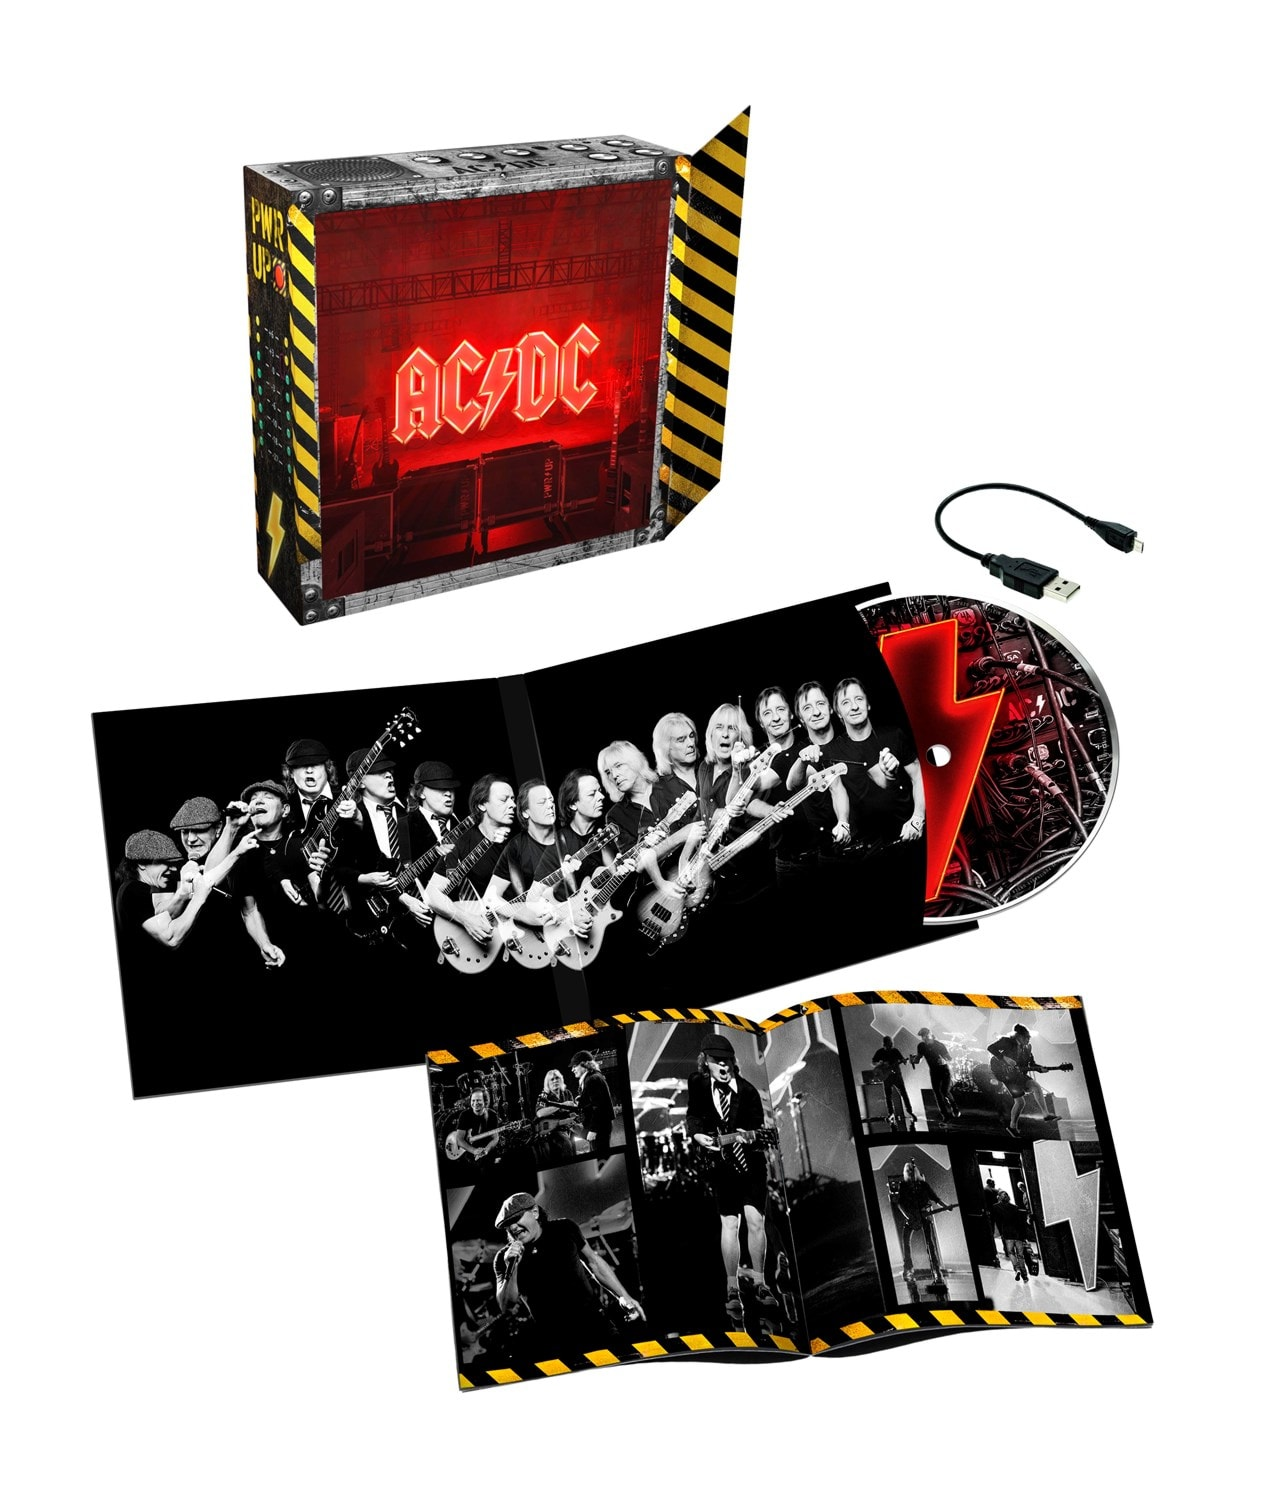 AC/DC - Power Up CD Deluxe Limited Edition Light Box